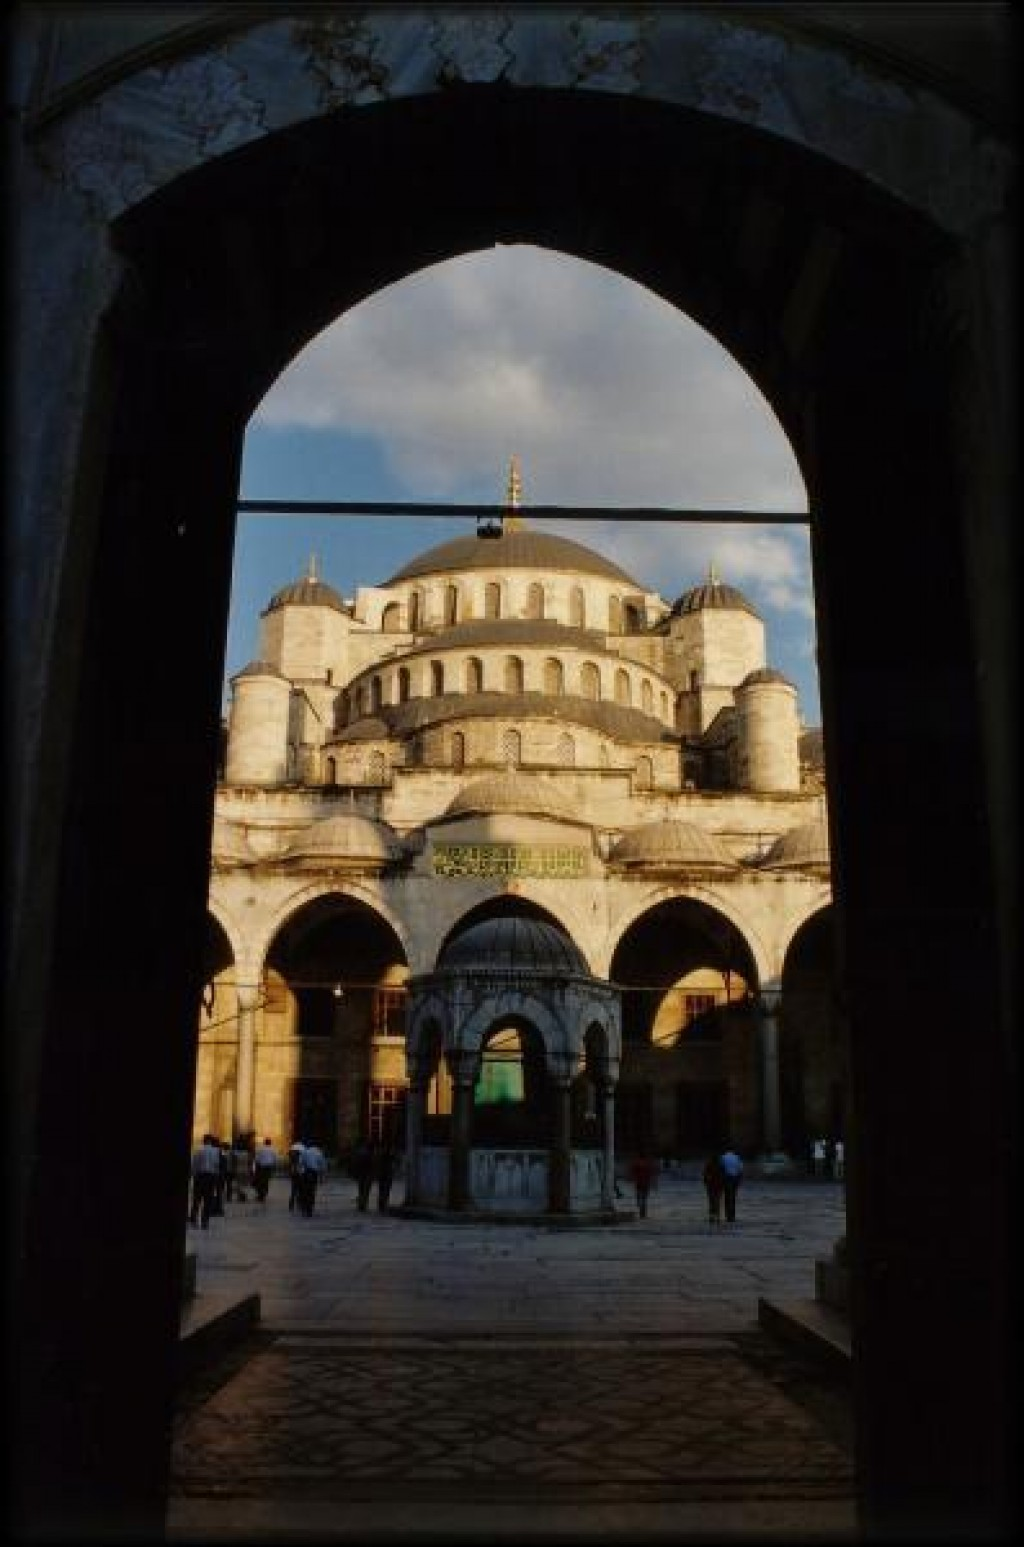 The Aya Sofia was just short a walk away.